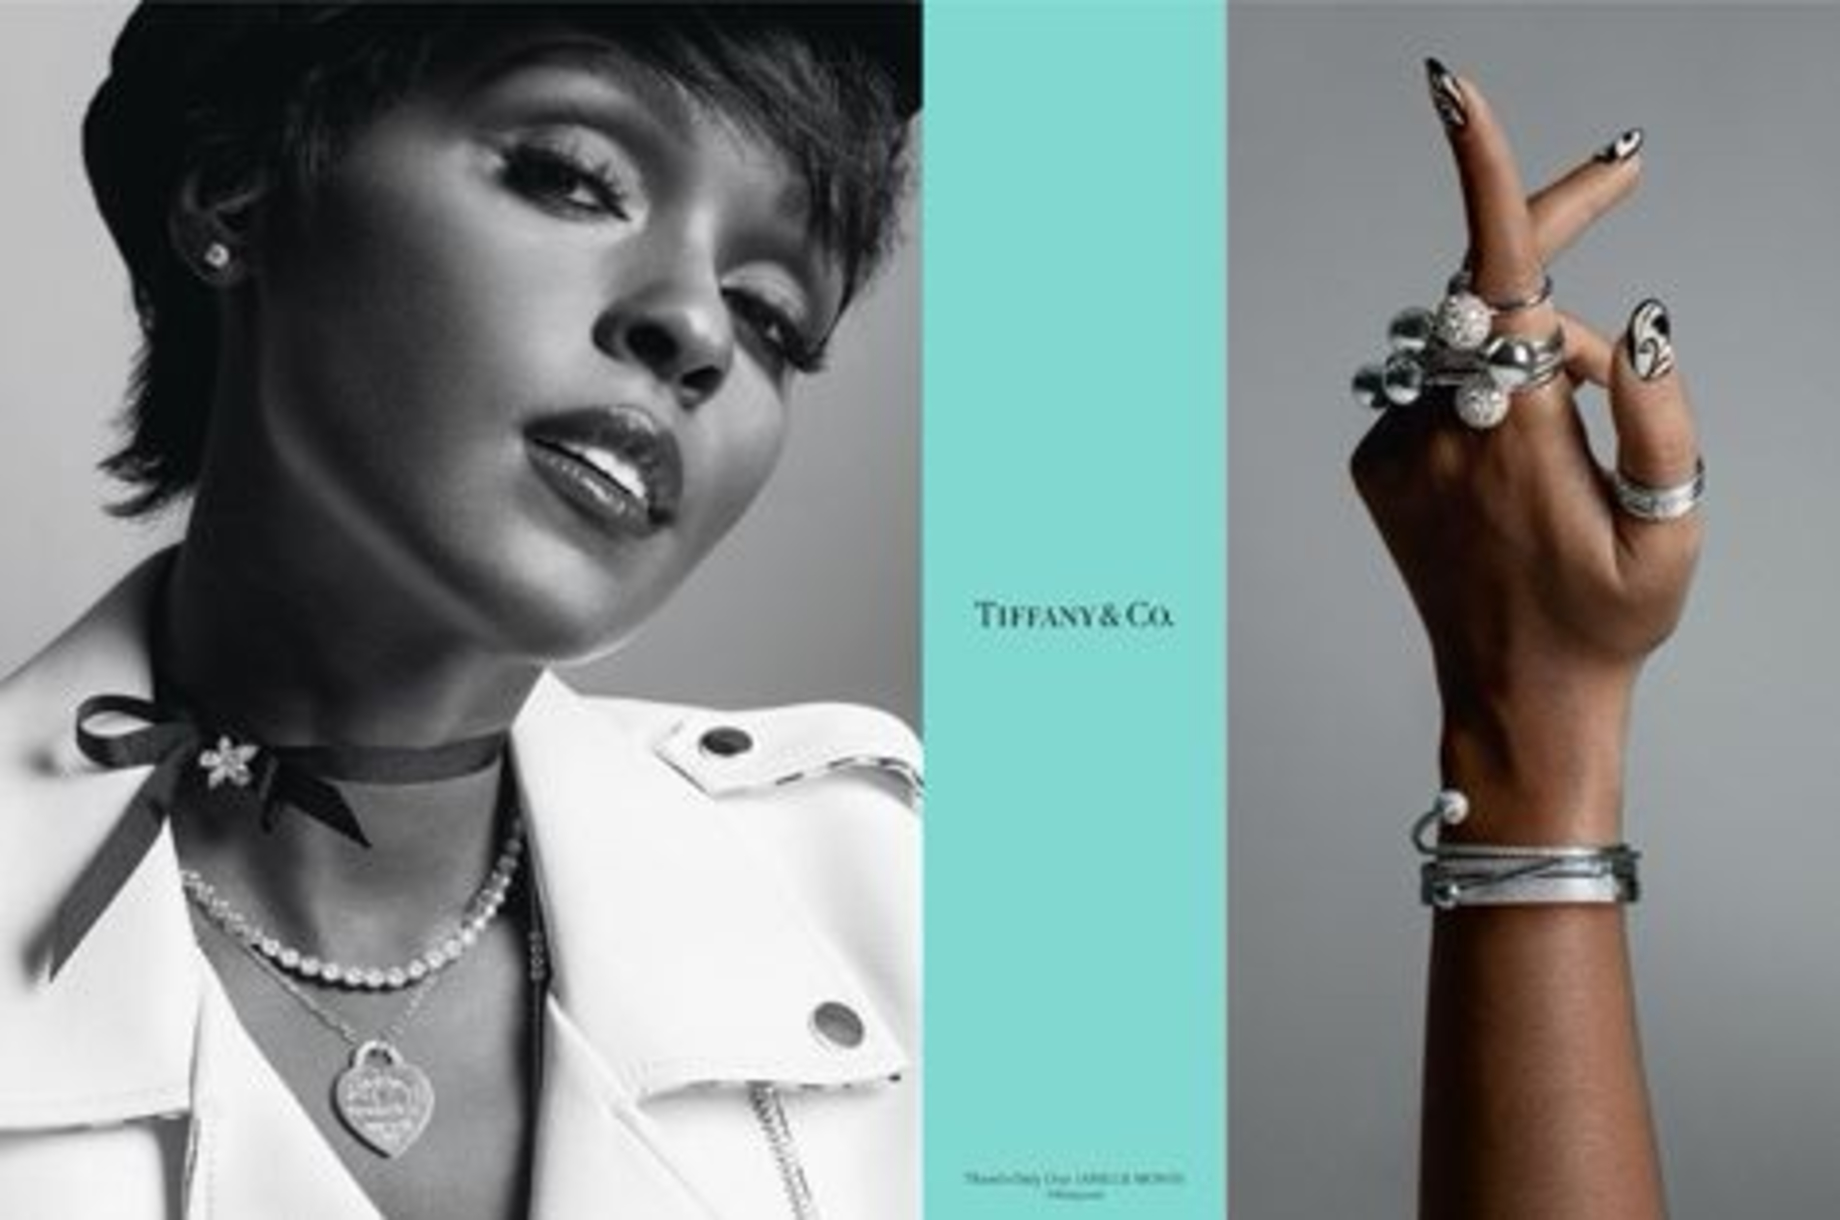 Tiffany & Co. Celebrates Individual Style in Fall 2017 Campaign